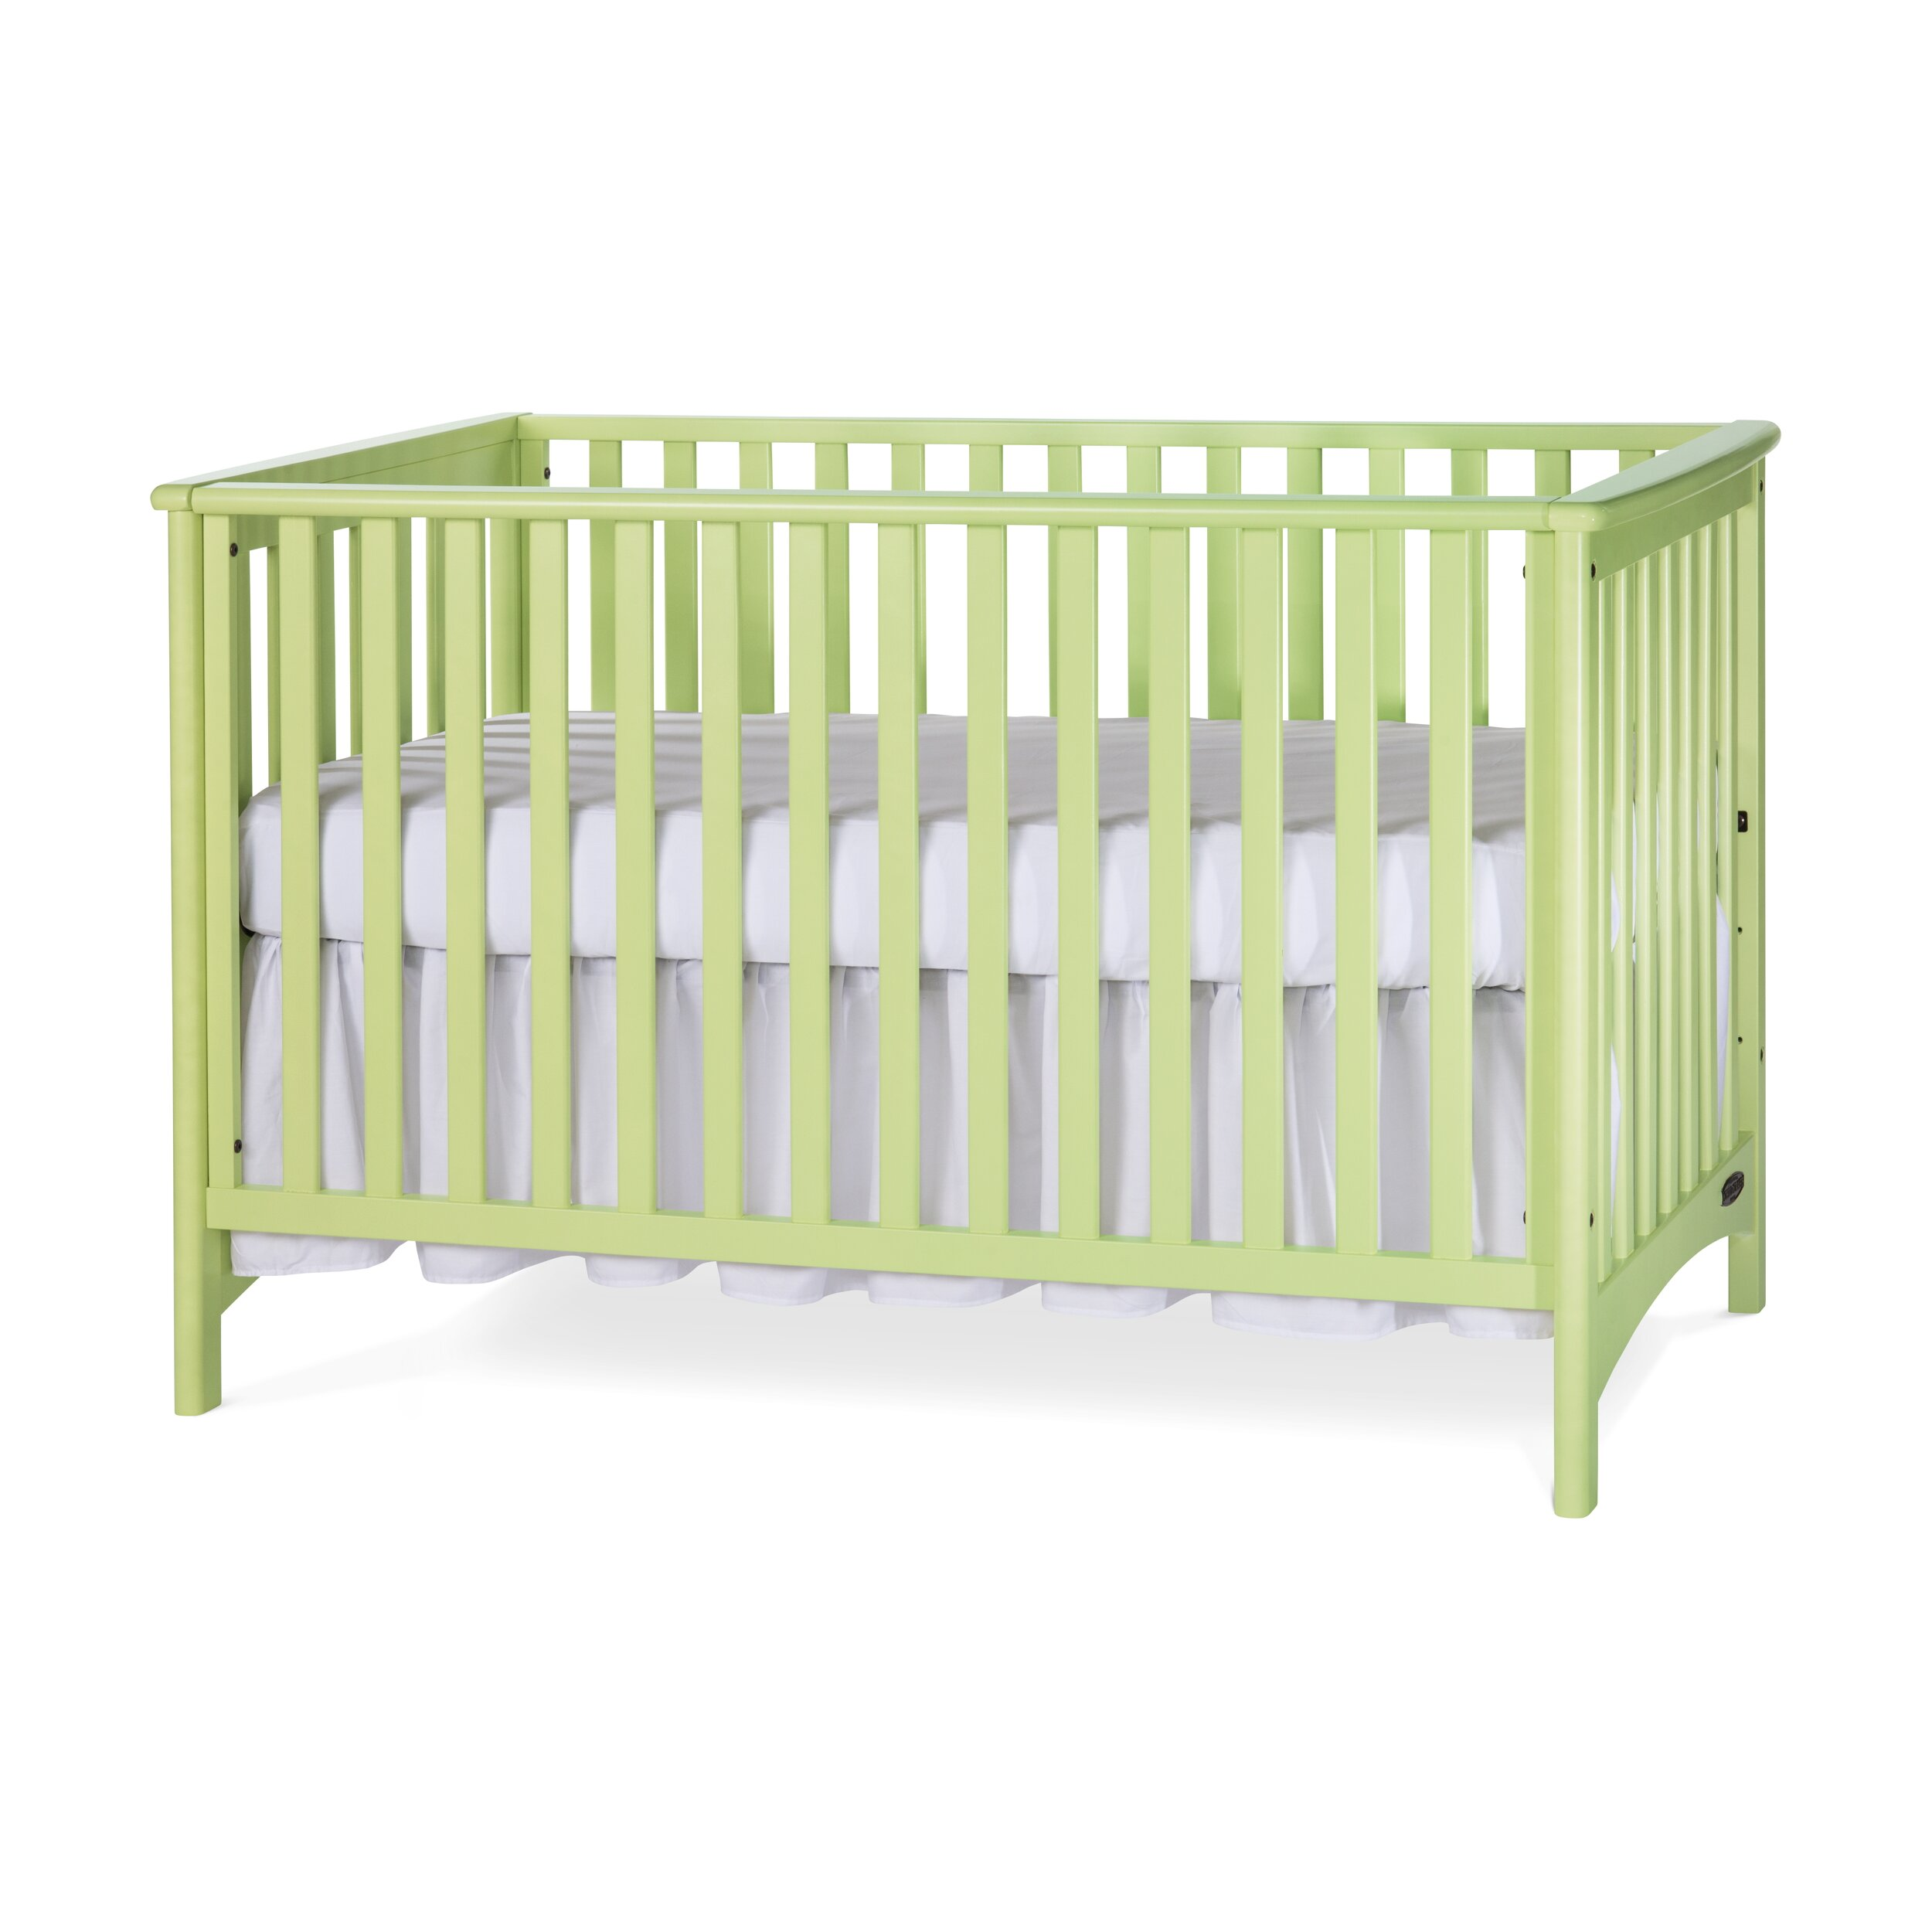 London stationary 3 in 1 convertible crib wayfair for Child craft soho crib natural